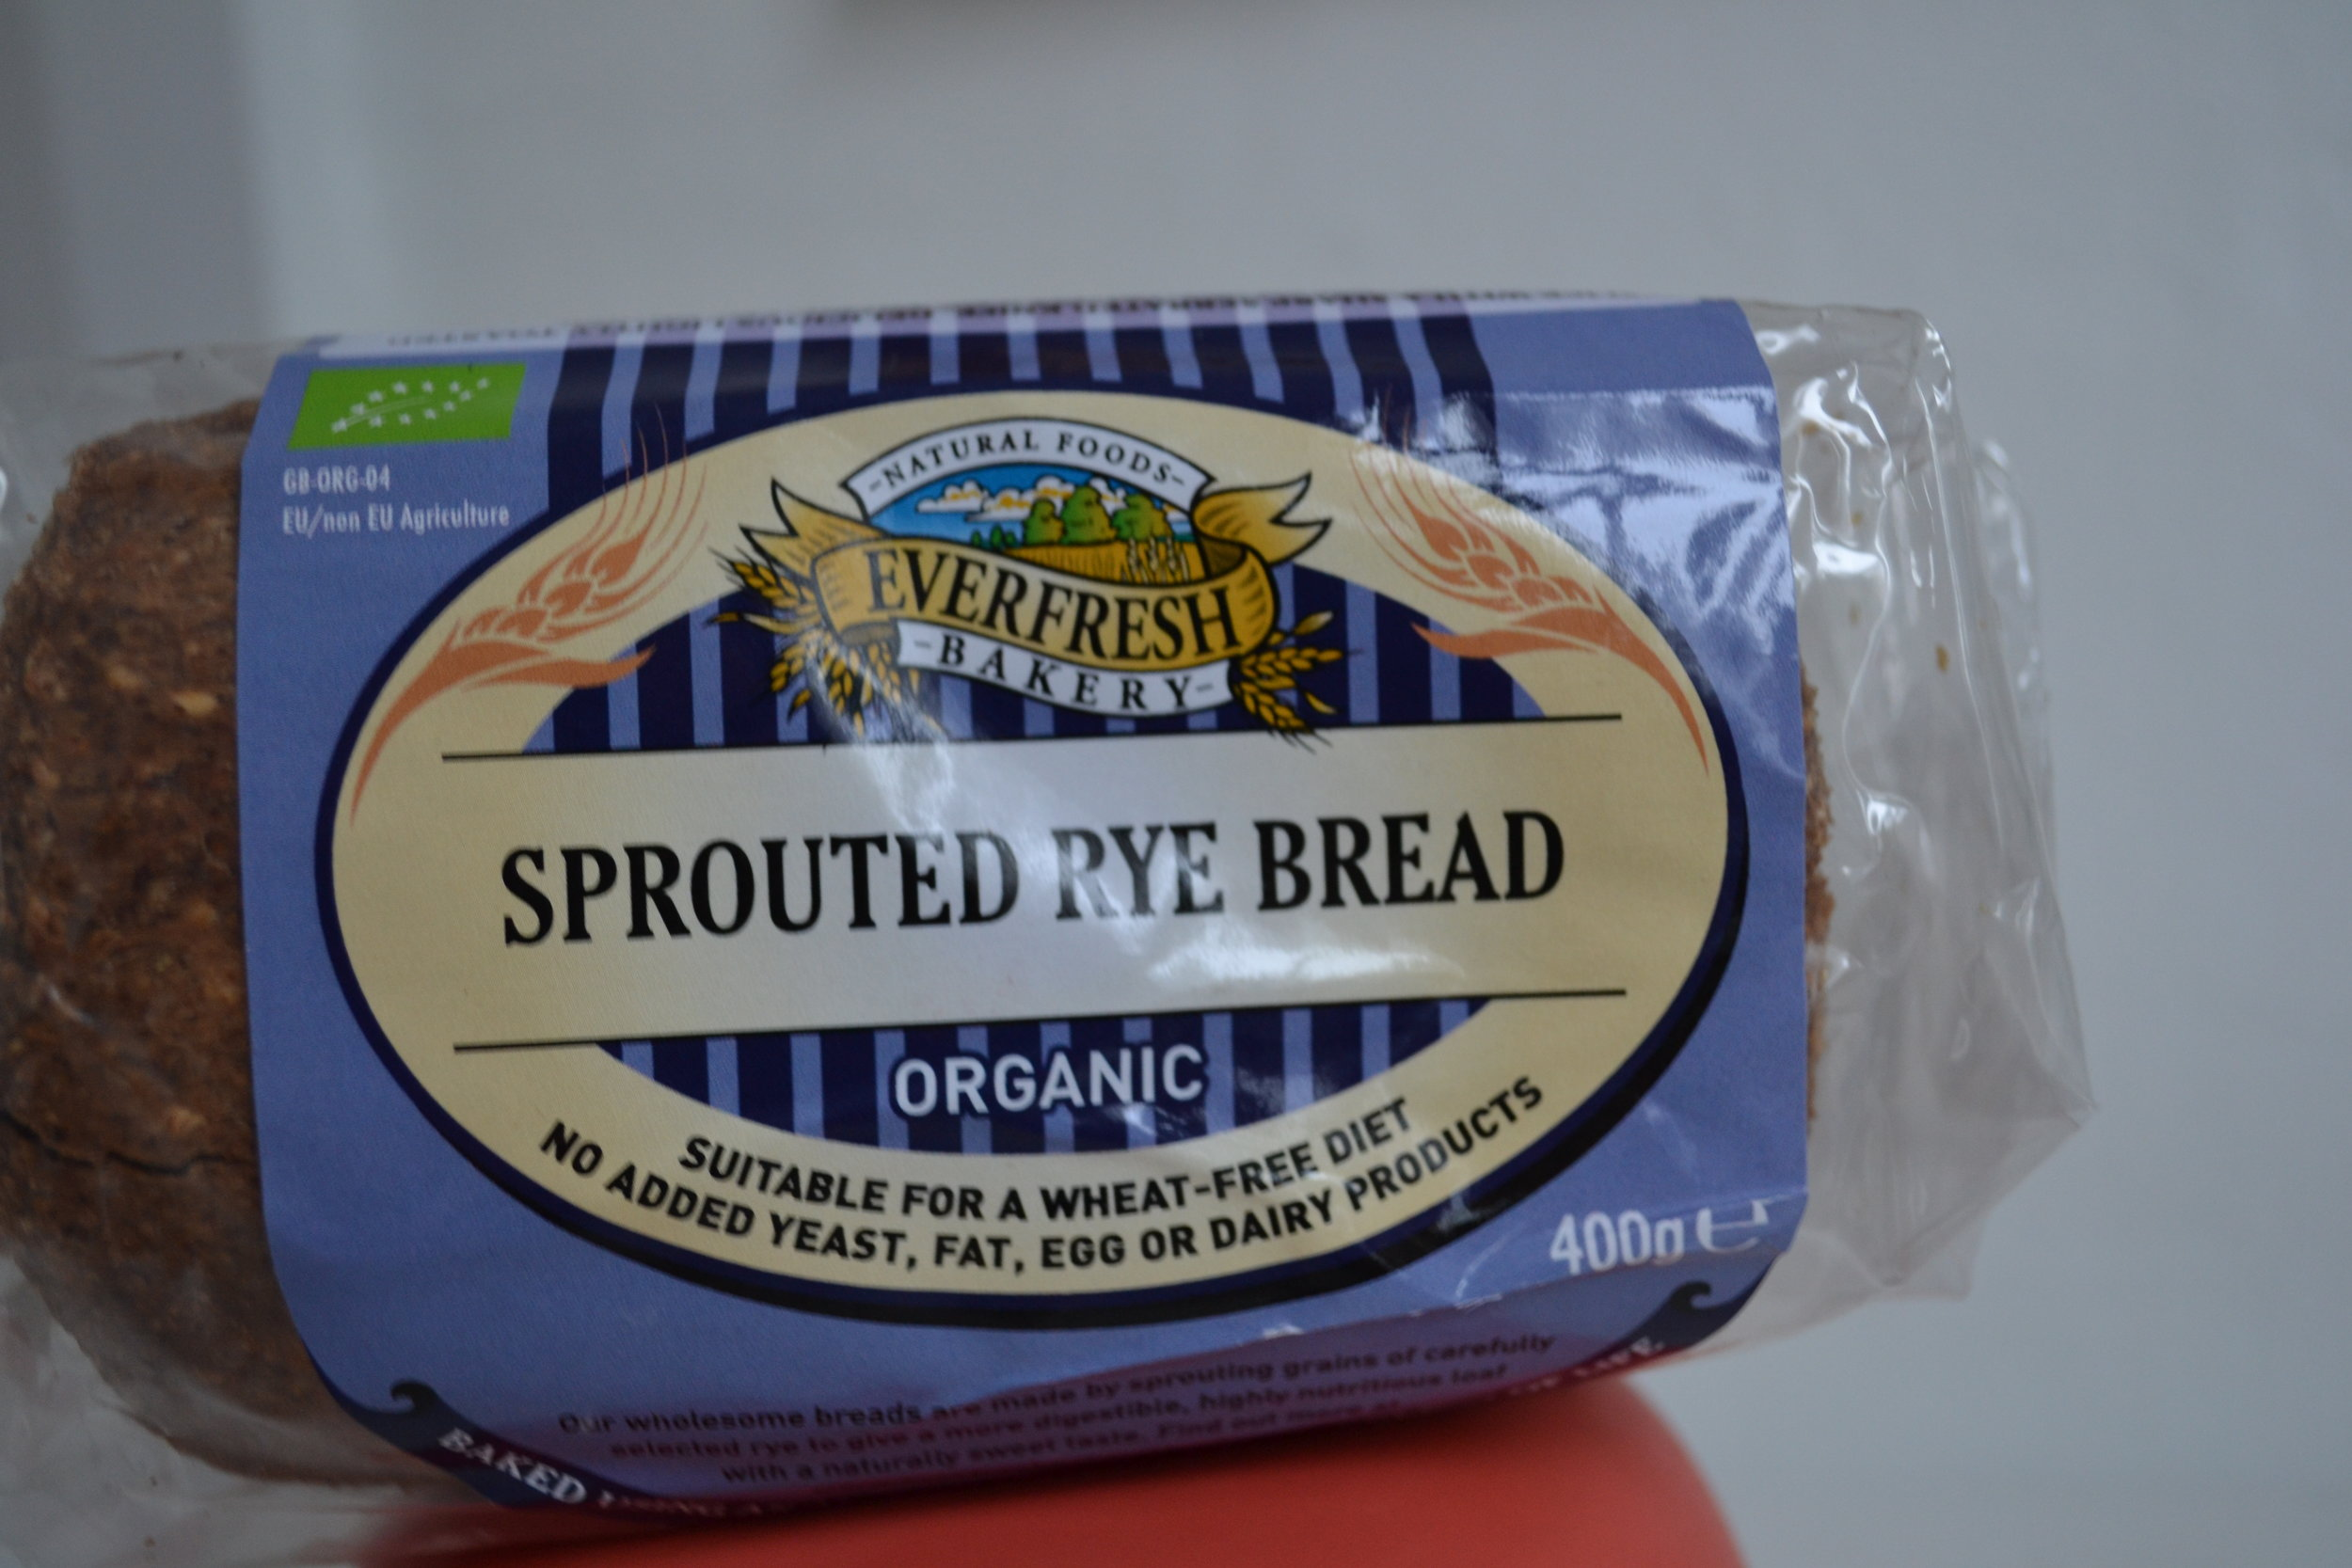 4. Everfresh Sprouted Rye